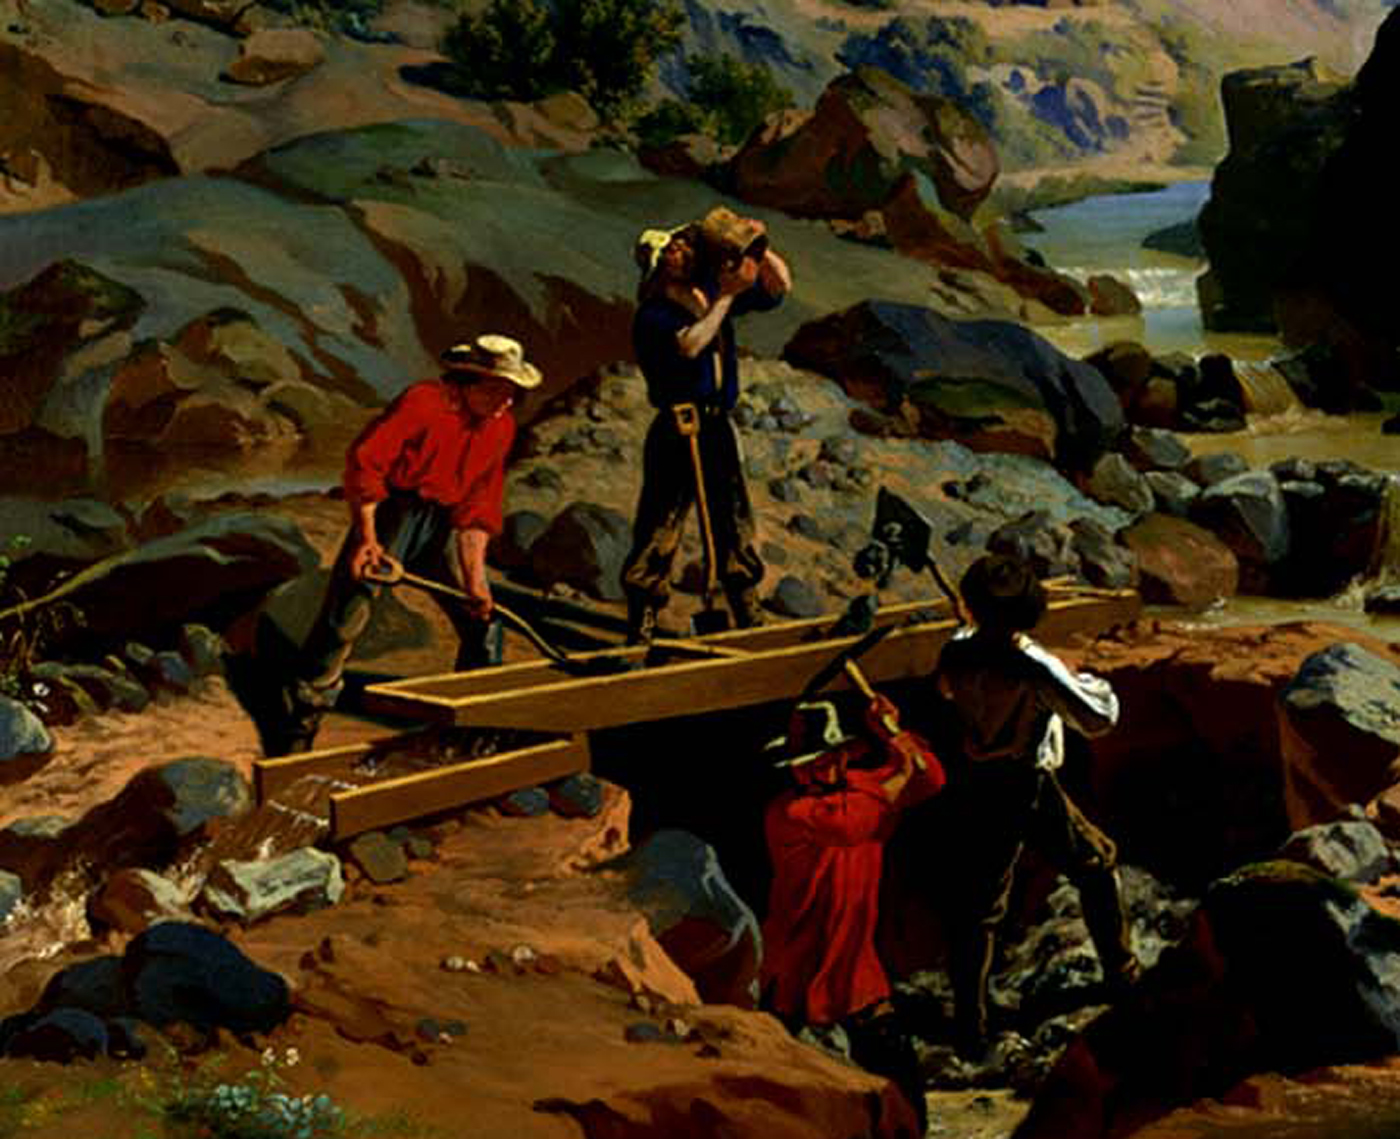 Miners in the Sierras detail